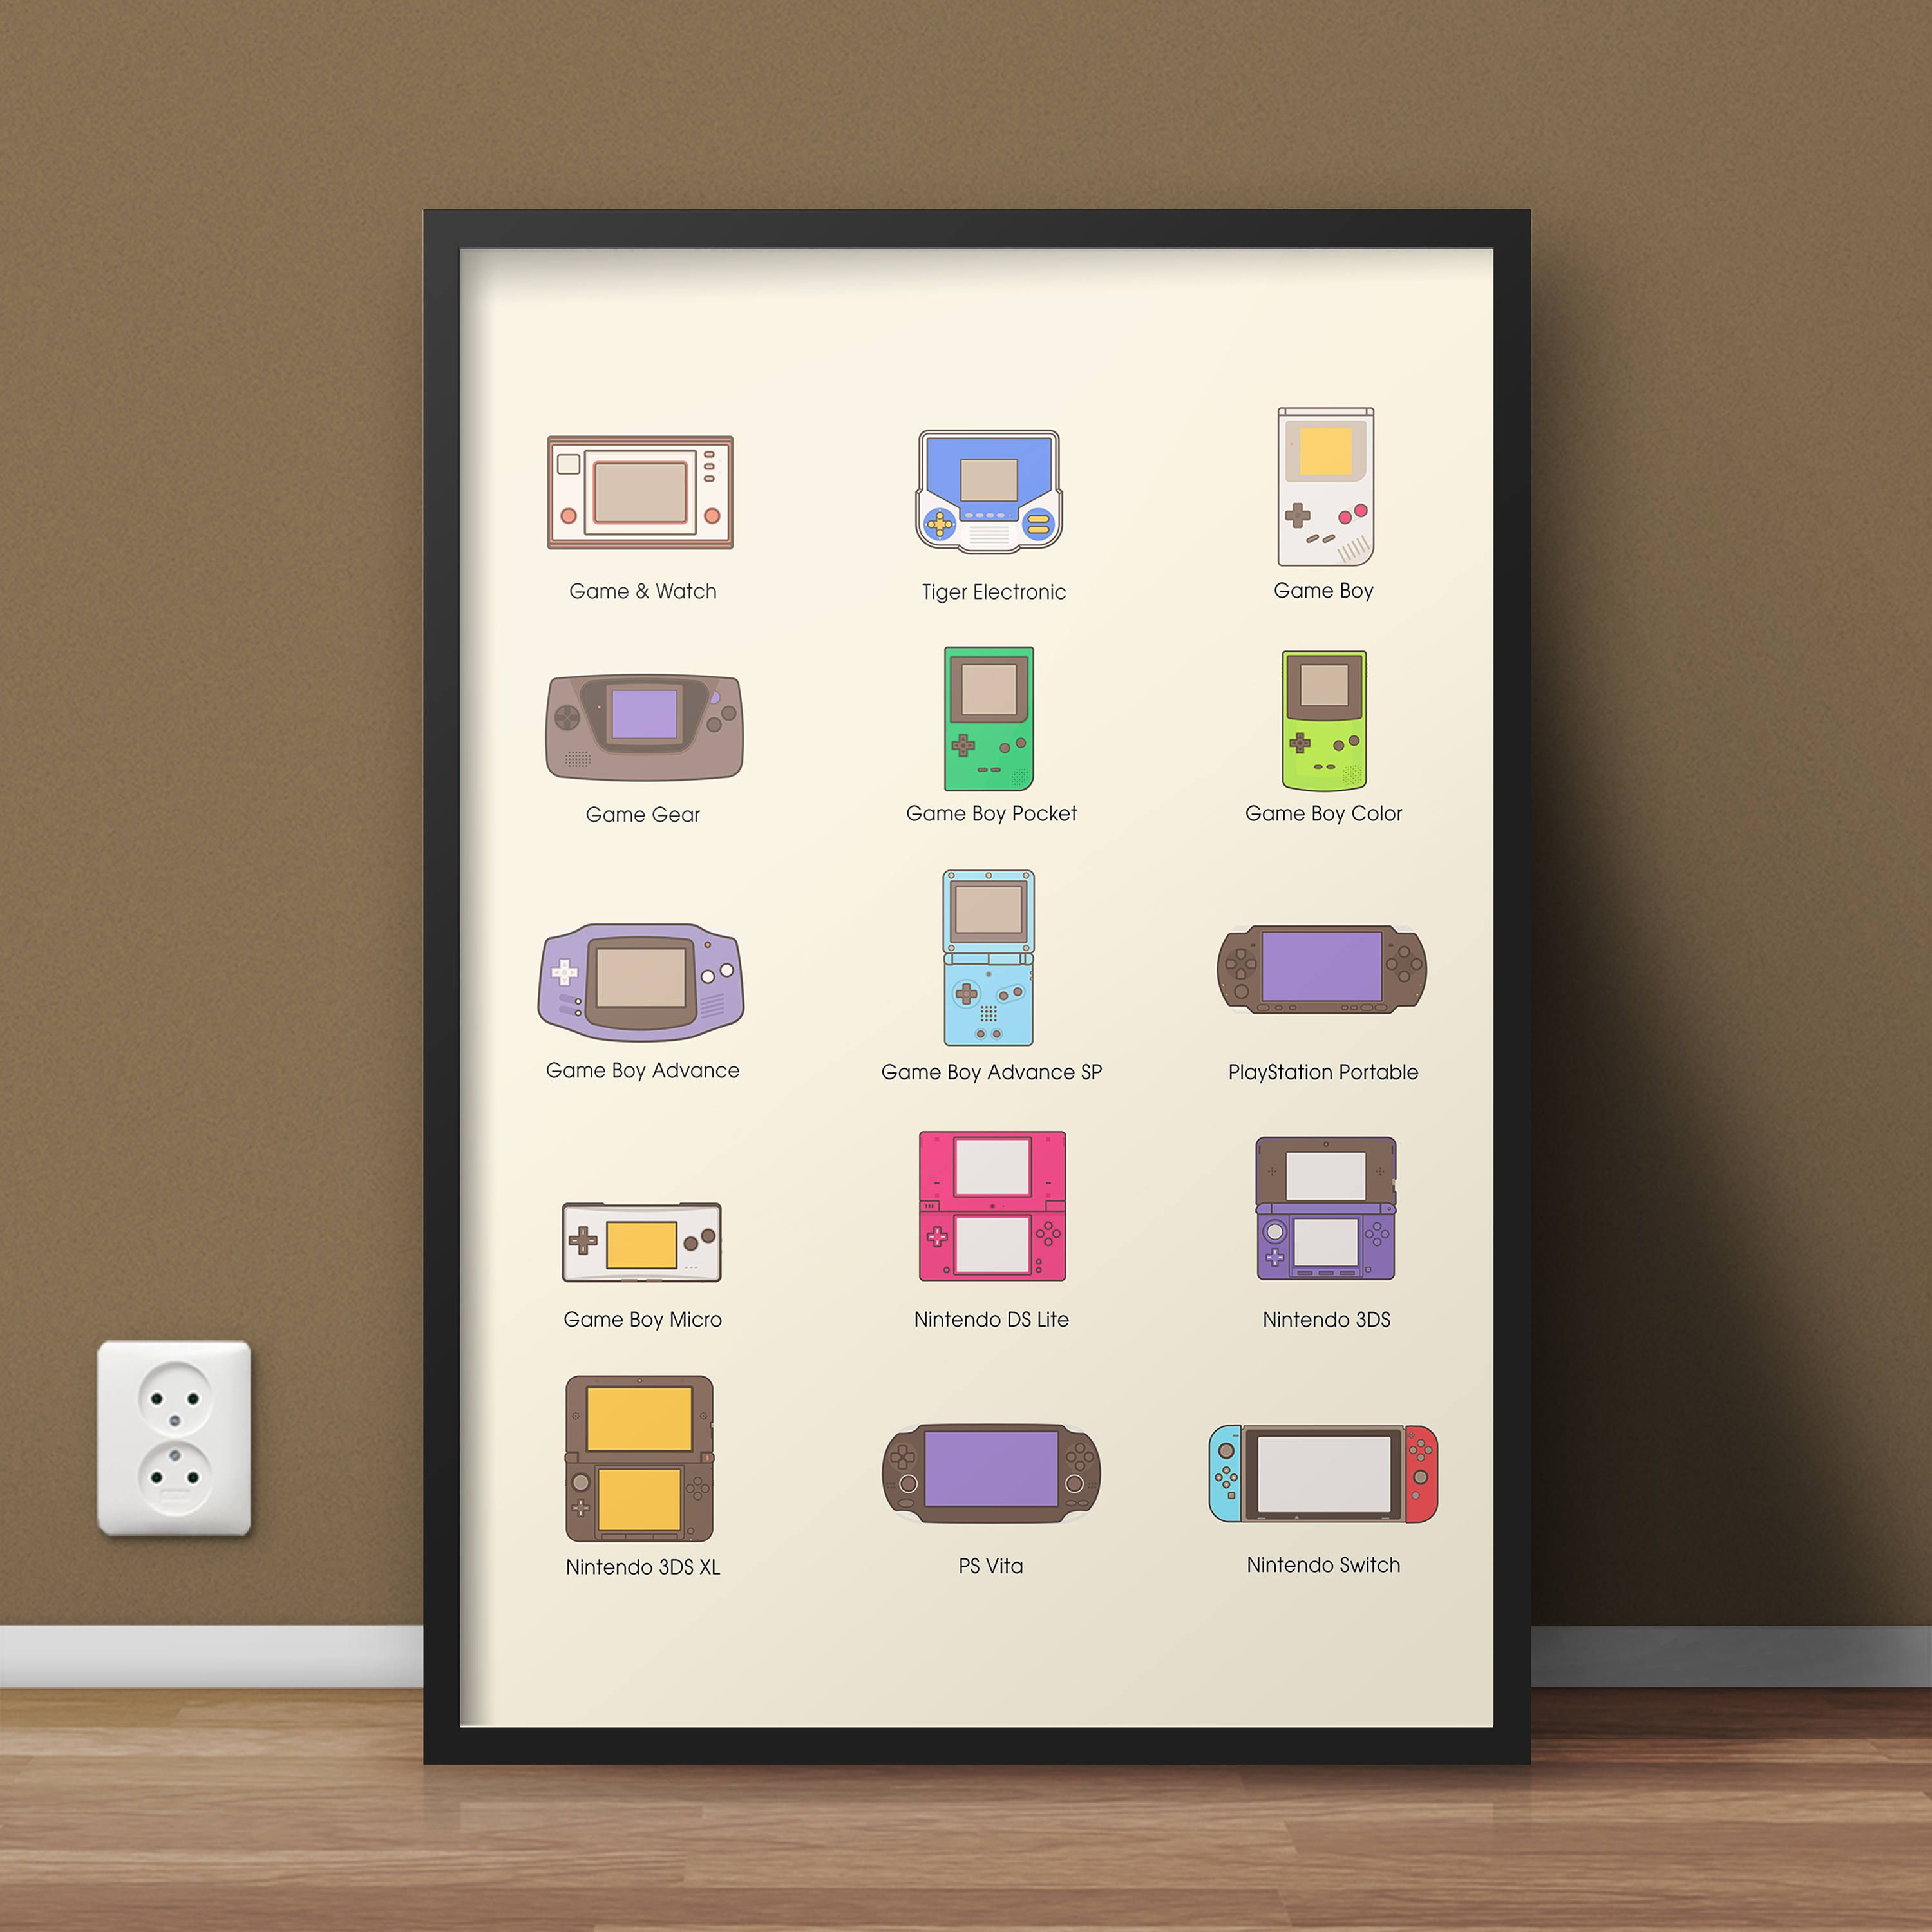 Video Game Wall Art Handheld Console Nintendo Switch Video Etsy Video Game Wall Art Video Game Decor Gaming Wall Art